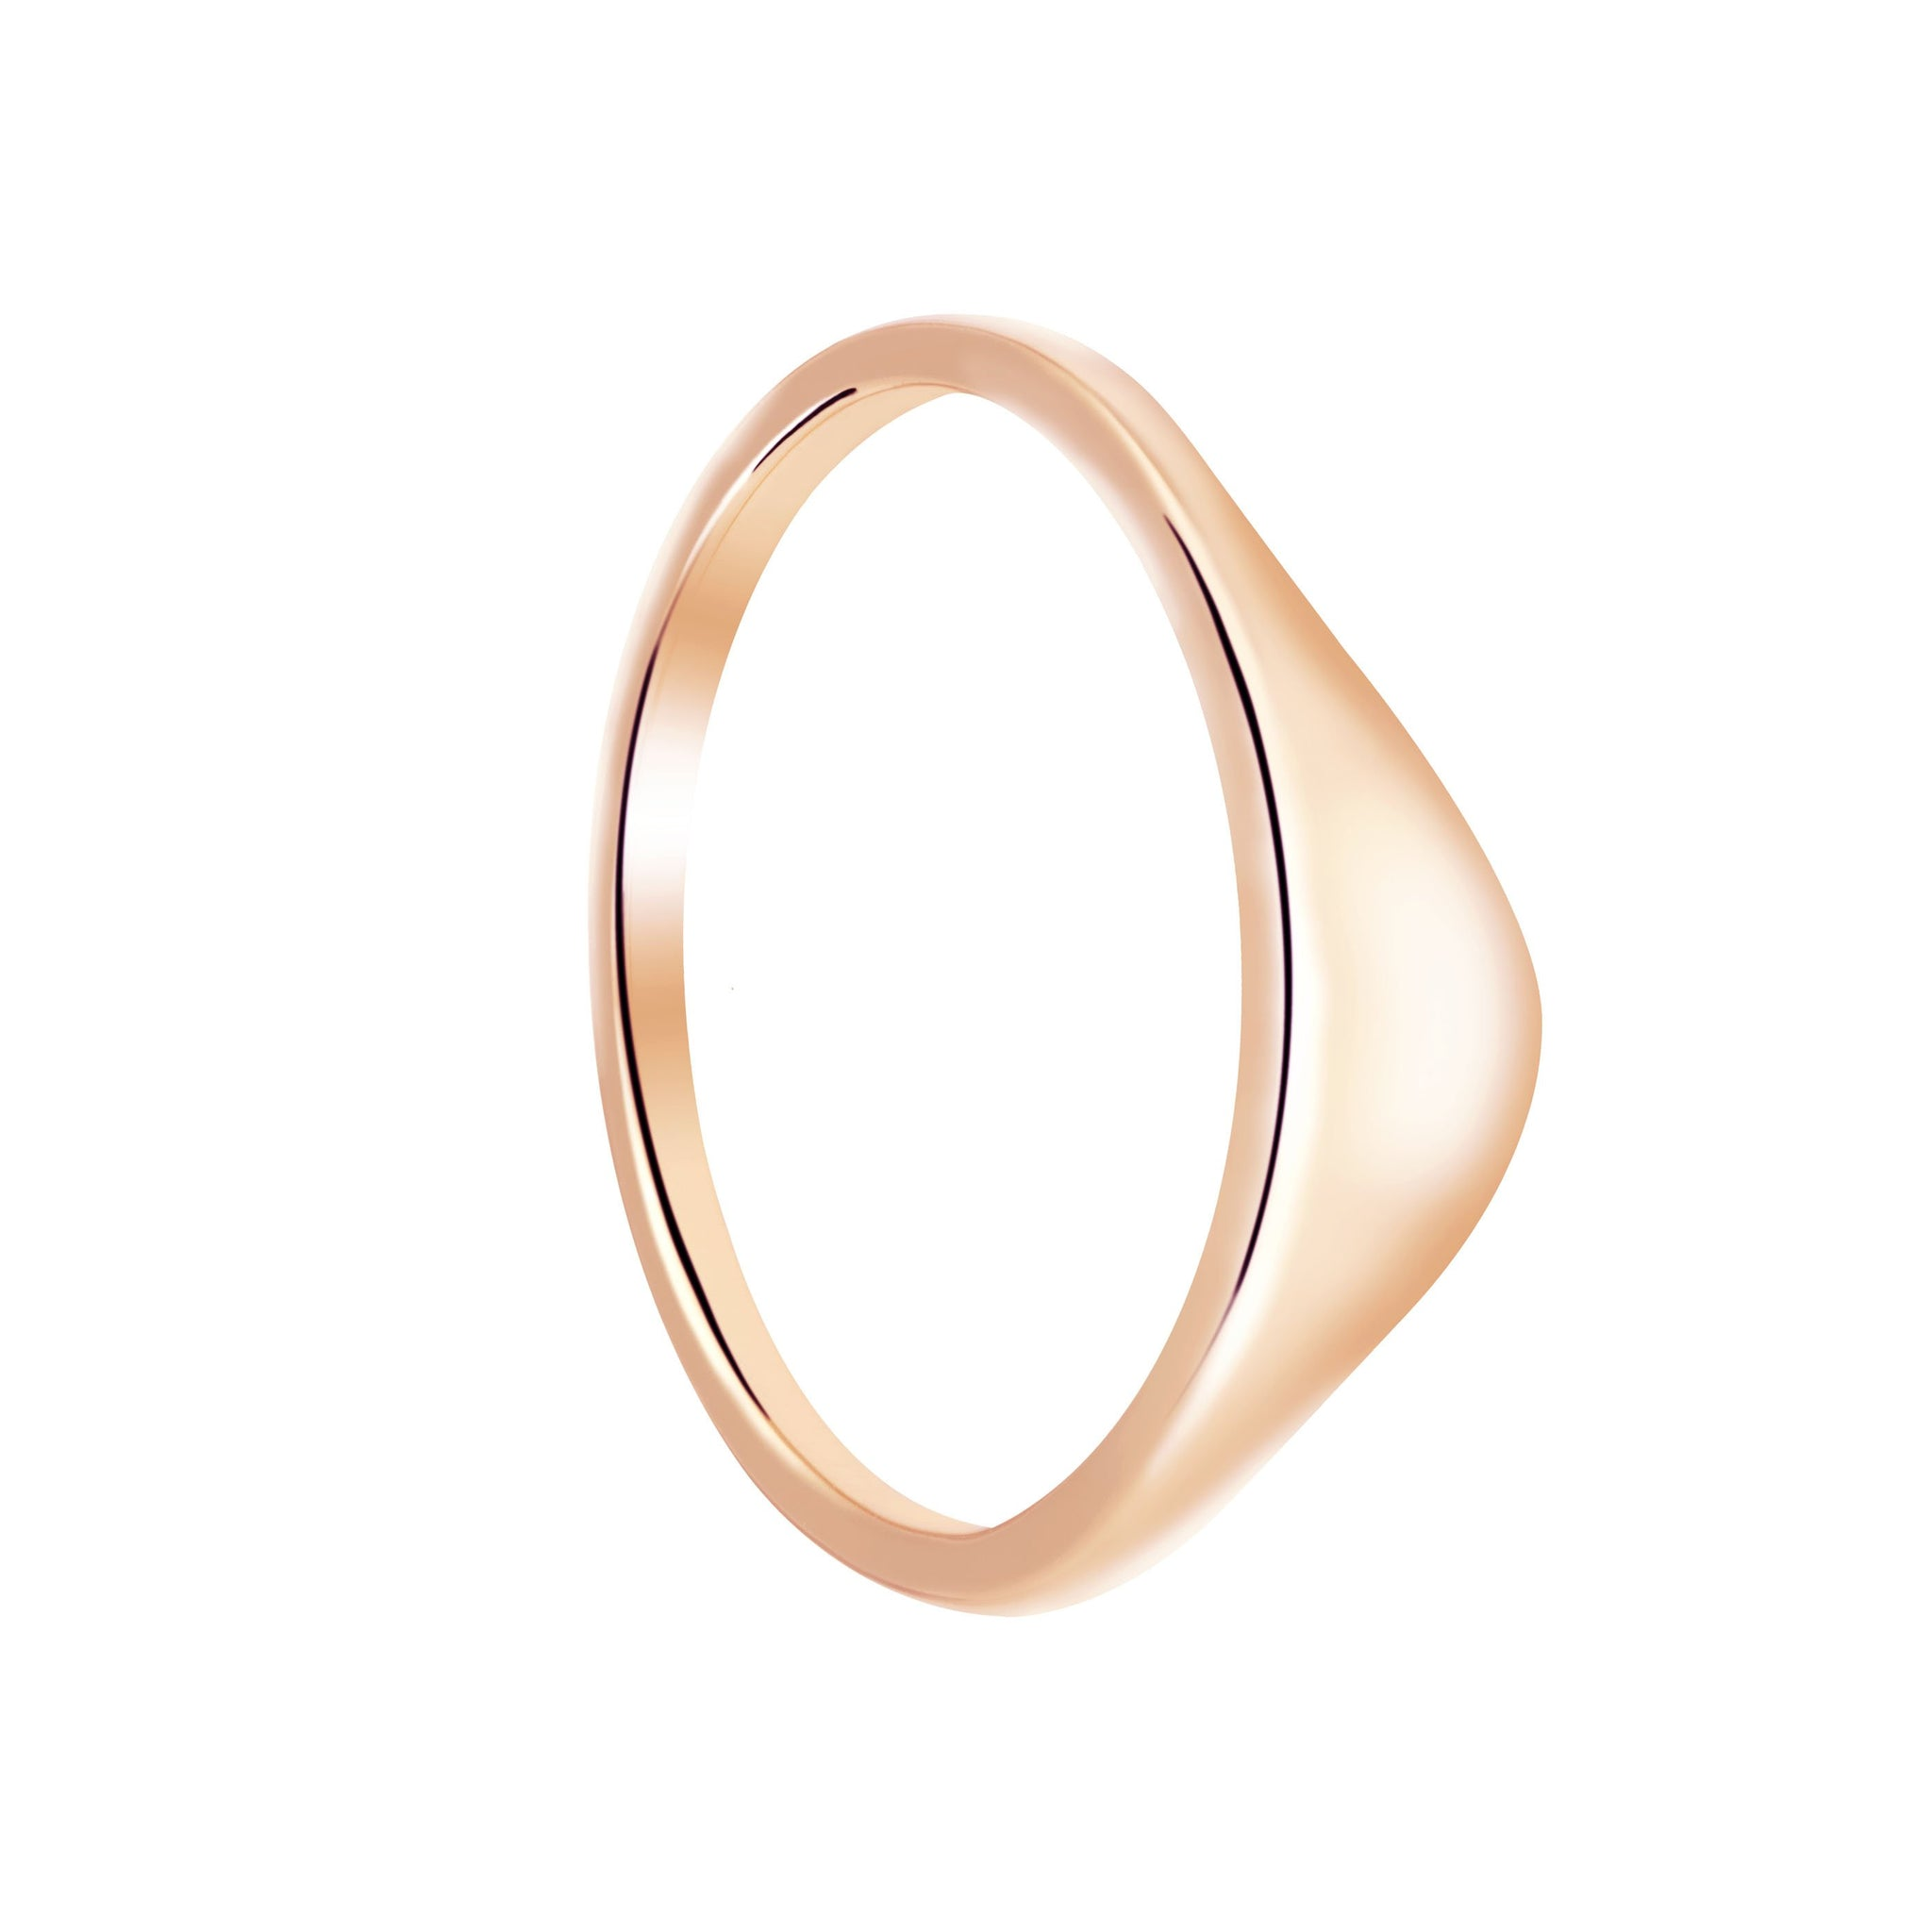 Molten Ring in Rose Gold